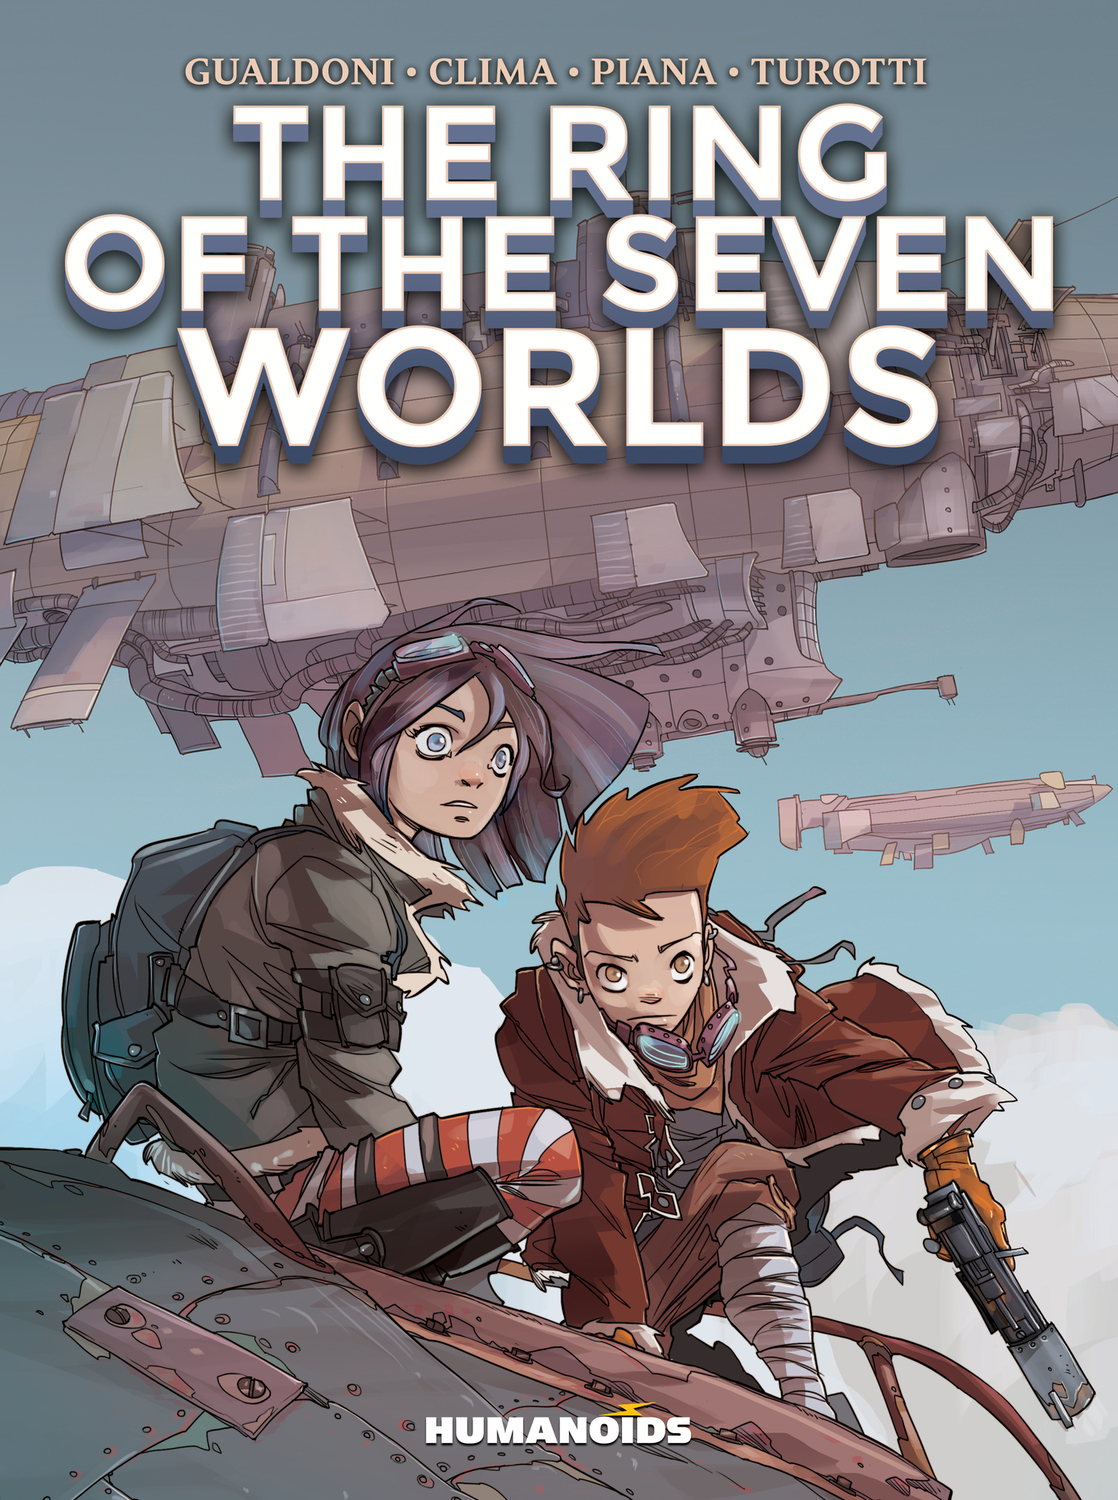 The Ring of the Seven Worlds - Softcover Trade